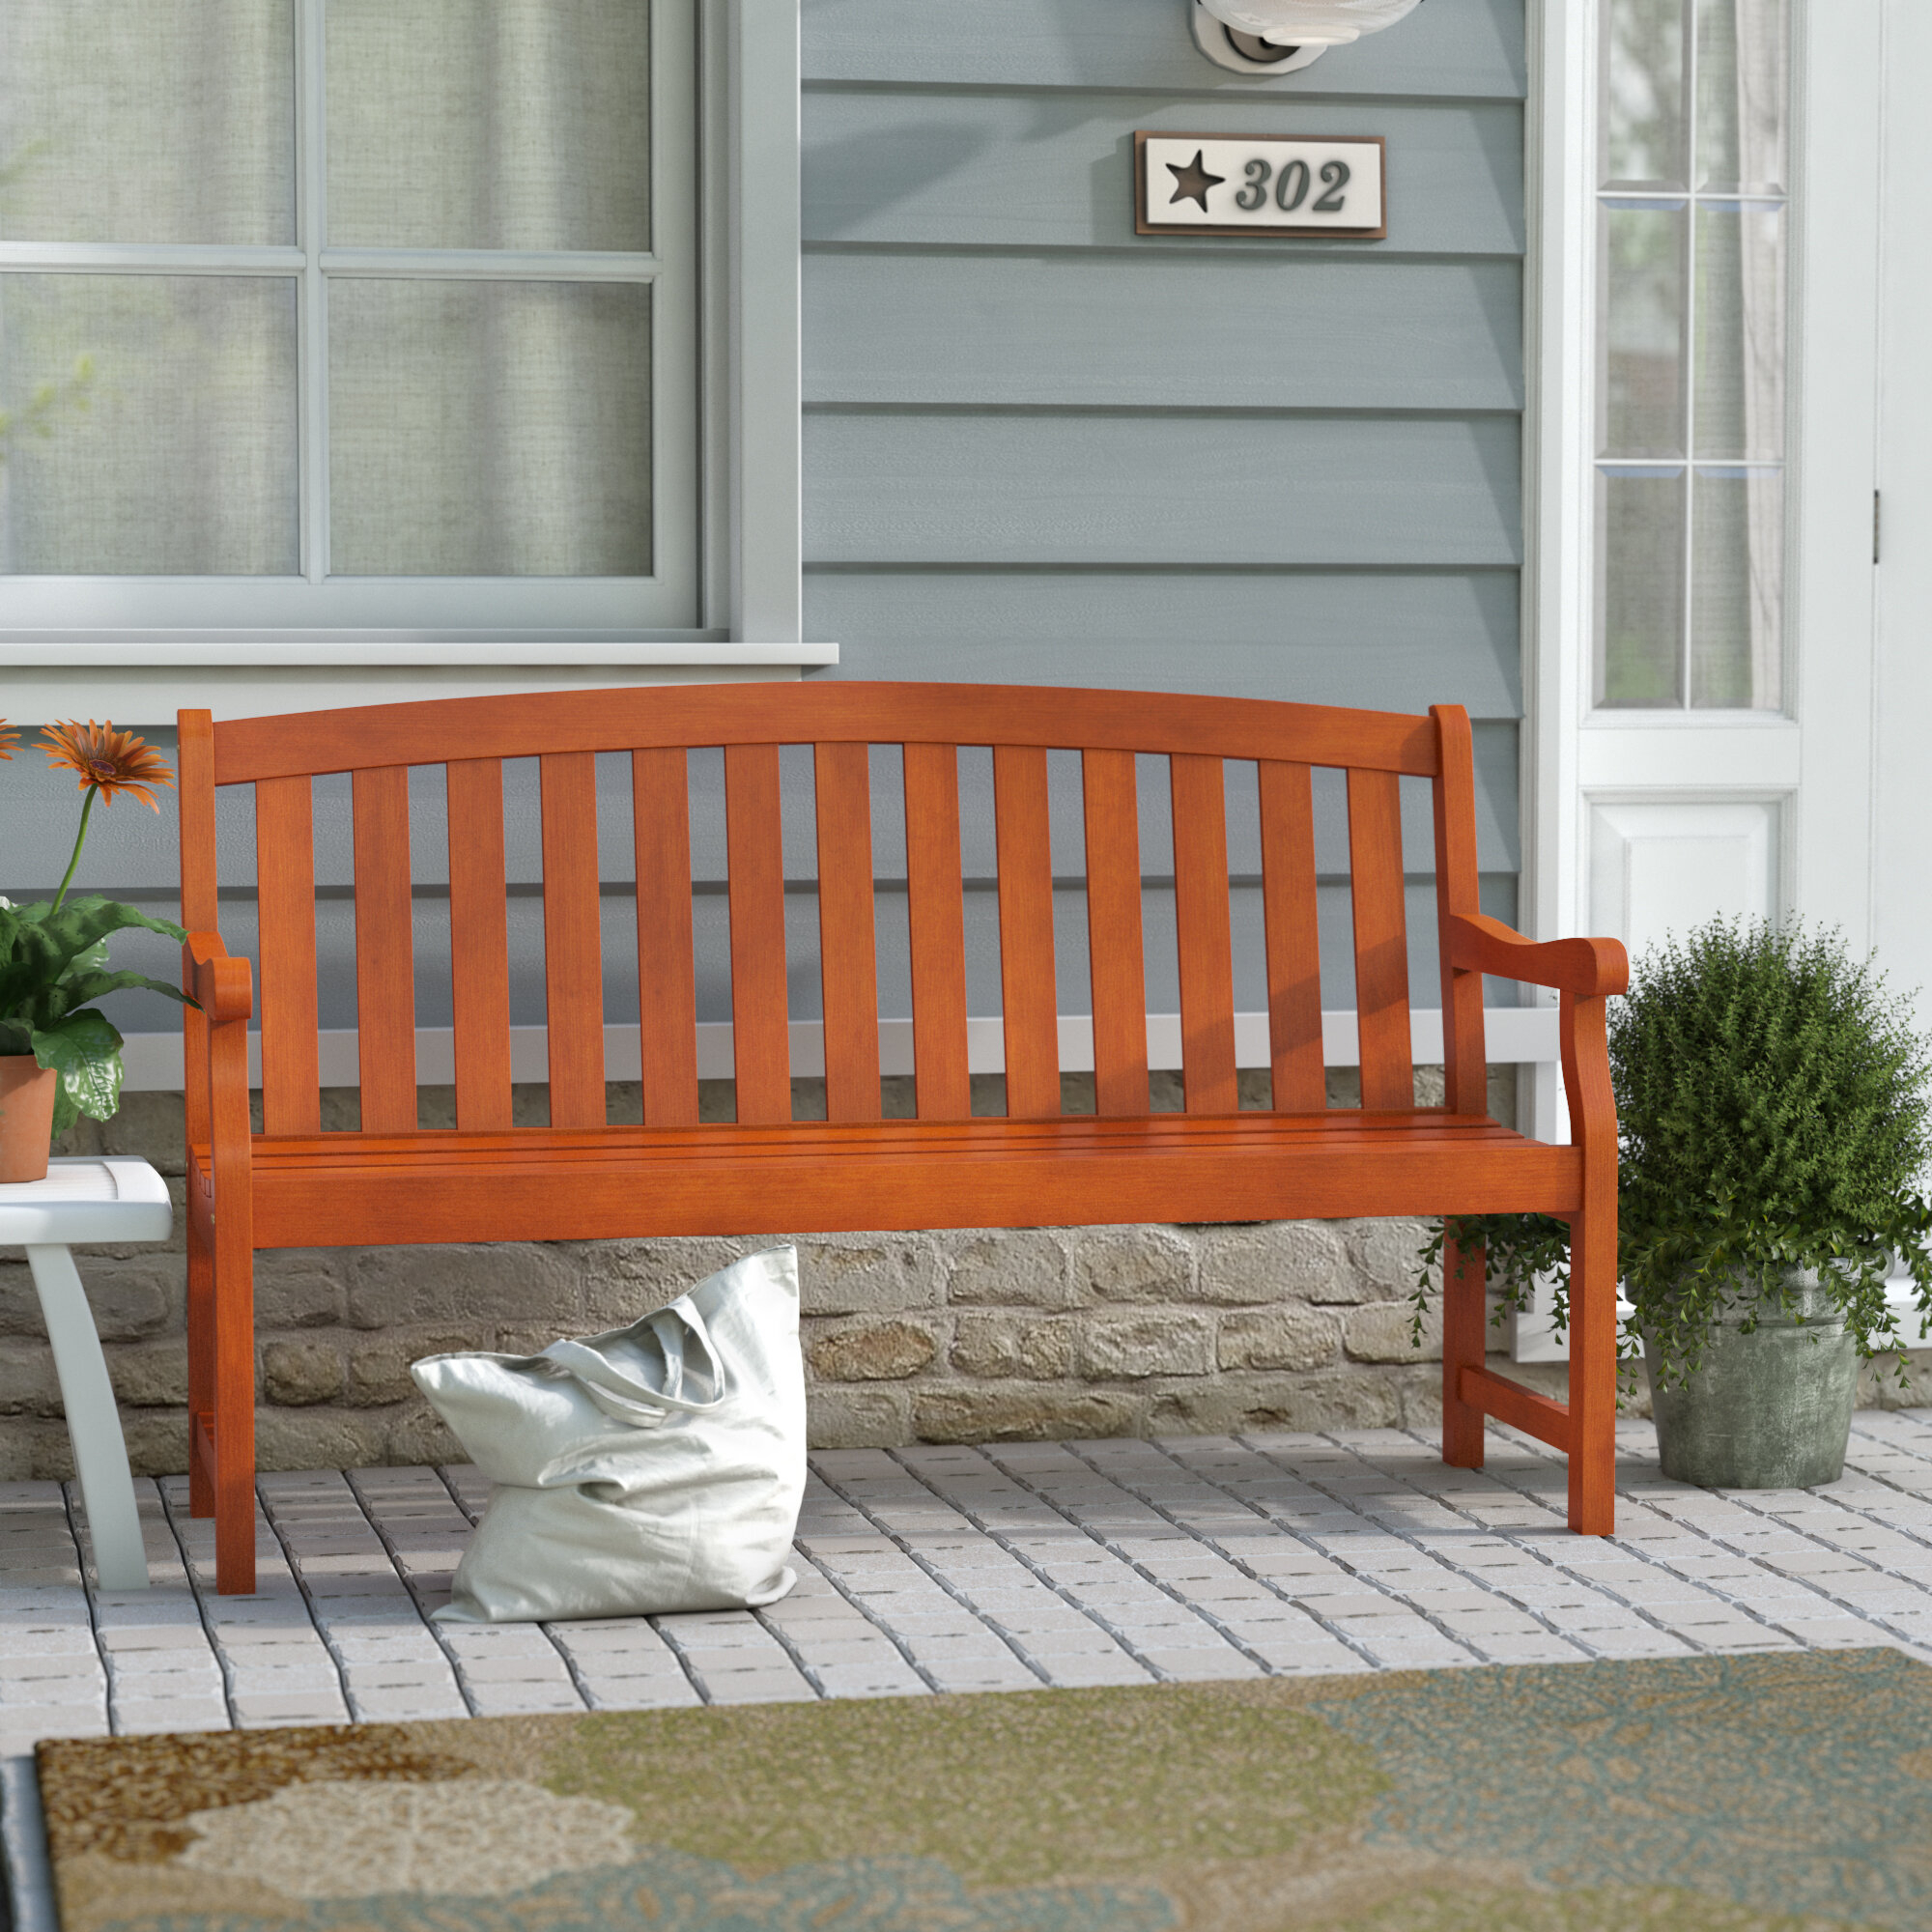 Defalco Garden Bench With Amabel Wooden Garden Benches (View 24 of 25)